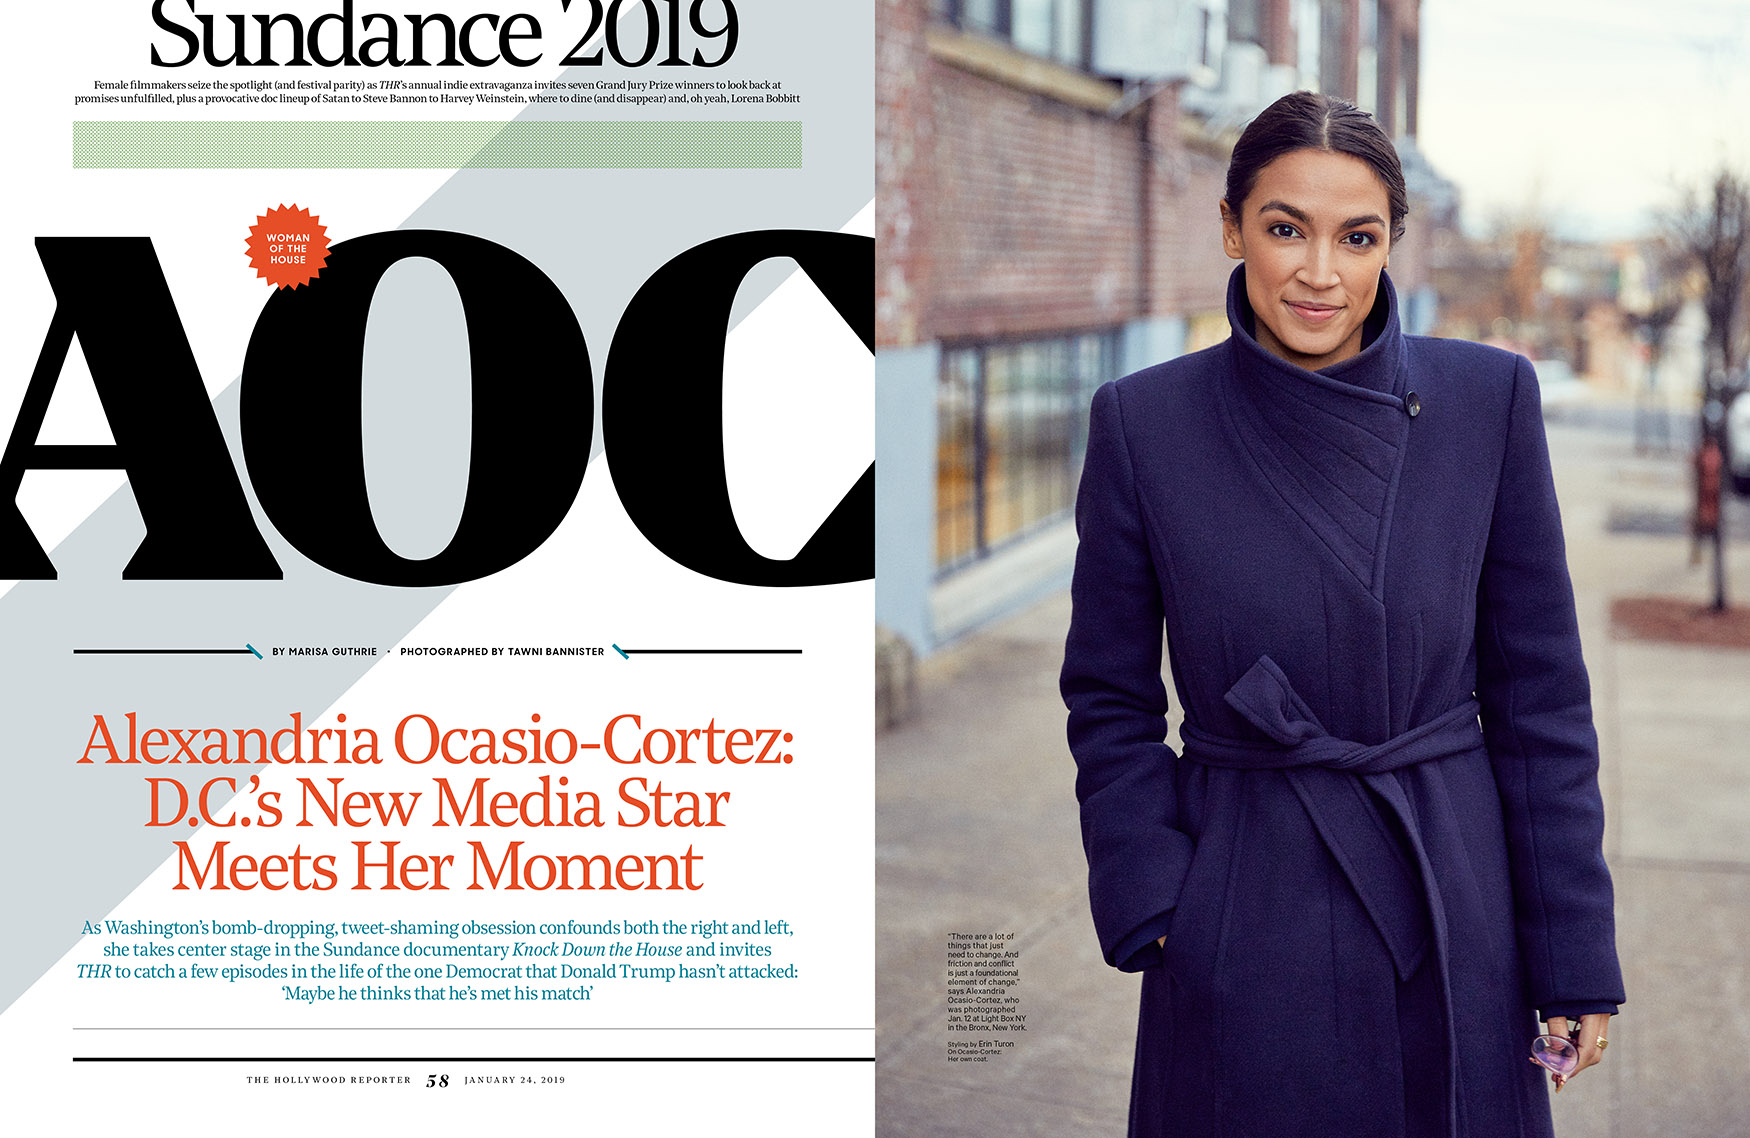 Alexandria Ocasio-Cortez and 2019 Sundance Film Festival / The Hollywood Reporter / kelsey stefanson / art direction + graphic design / yeskelsey.com